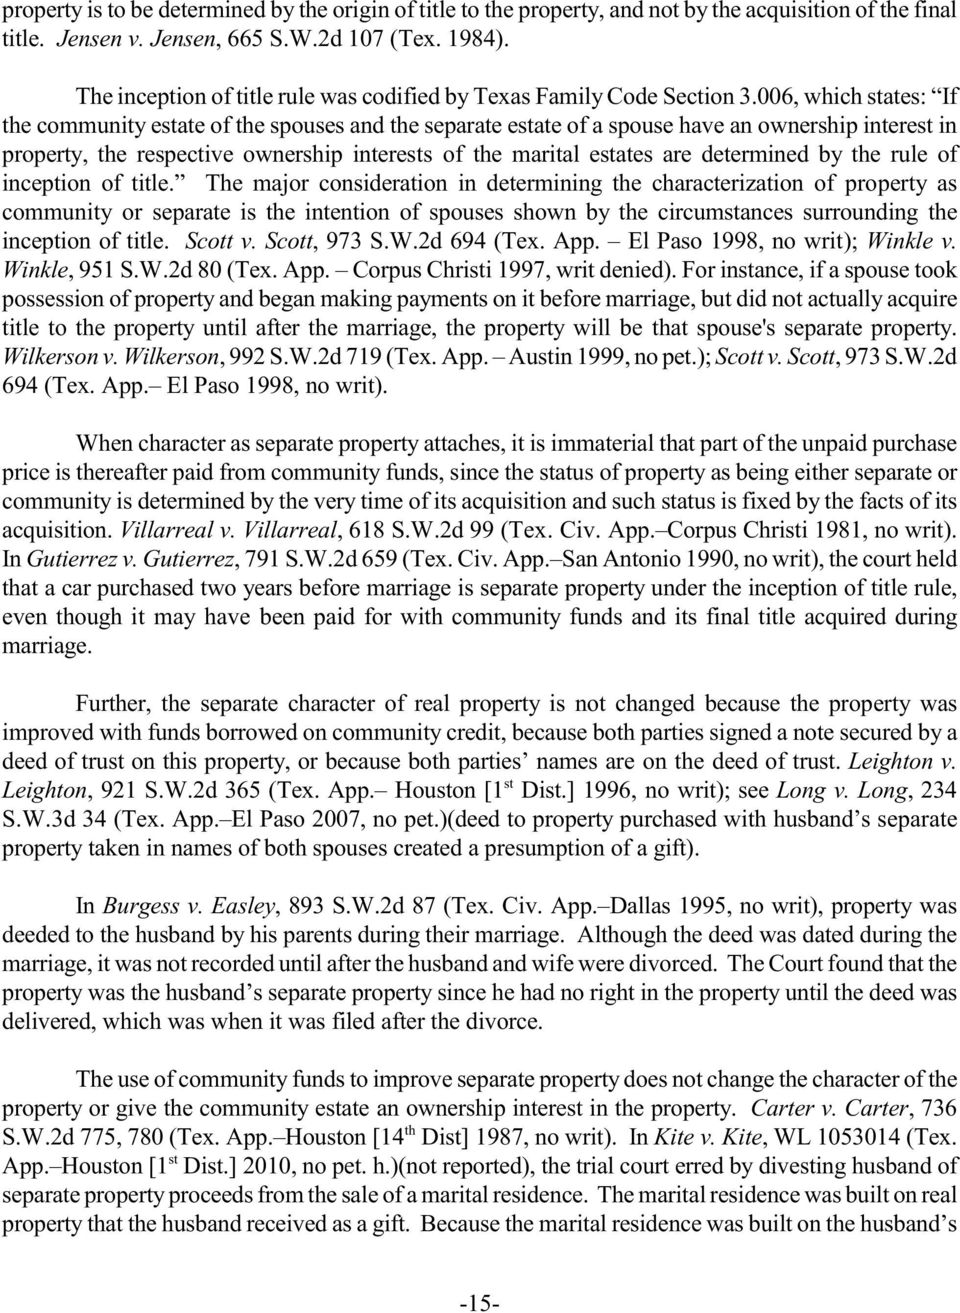 006, which ates: If e community eate of e spouses and e separate eate of a spouse have an ownership intere in property, e respective ownership interes of e marital eates are determined by e rule of